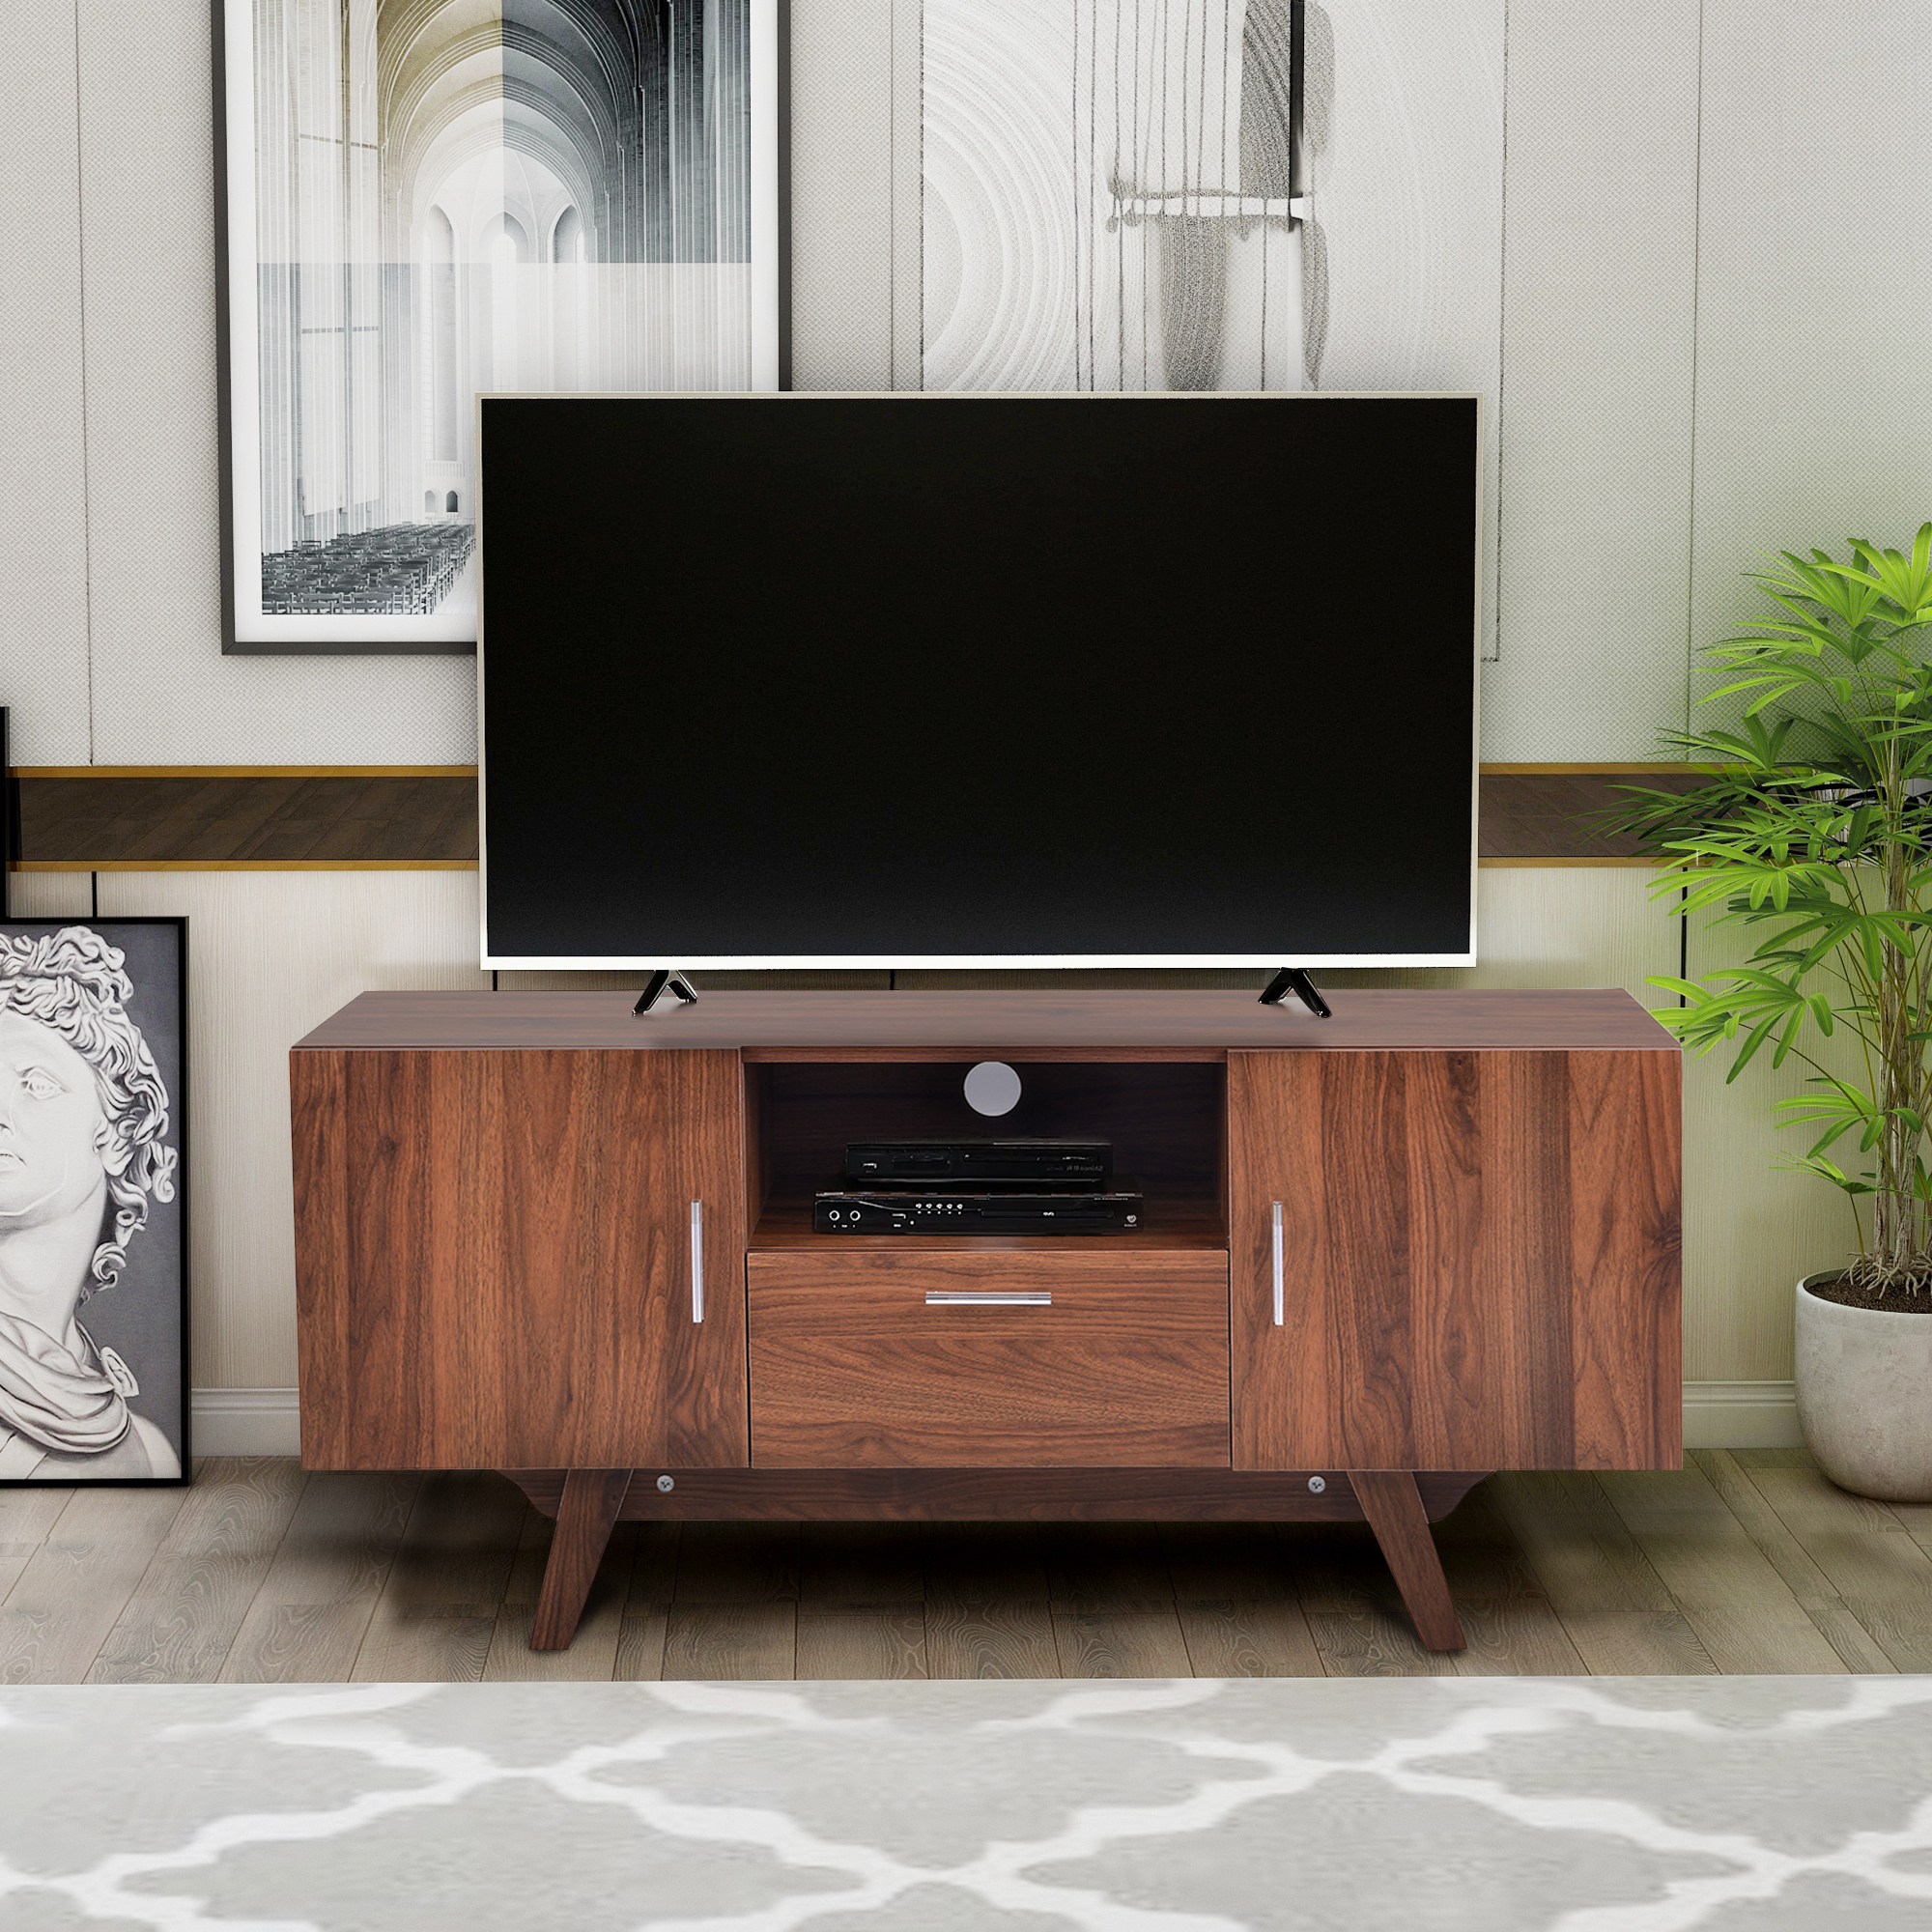 """Preferred Spellman Tv Stands For Tvs Up To 55"""" With Regard To Hommoo Tv Stand With Metal Legs For Tv's Up To 55 Inches (View 9 of 25)"""